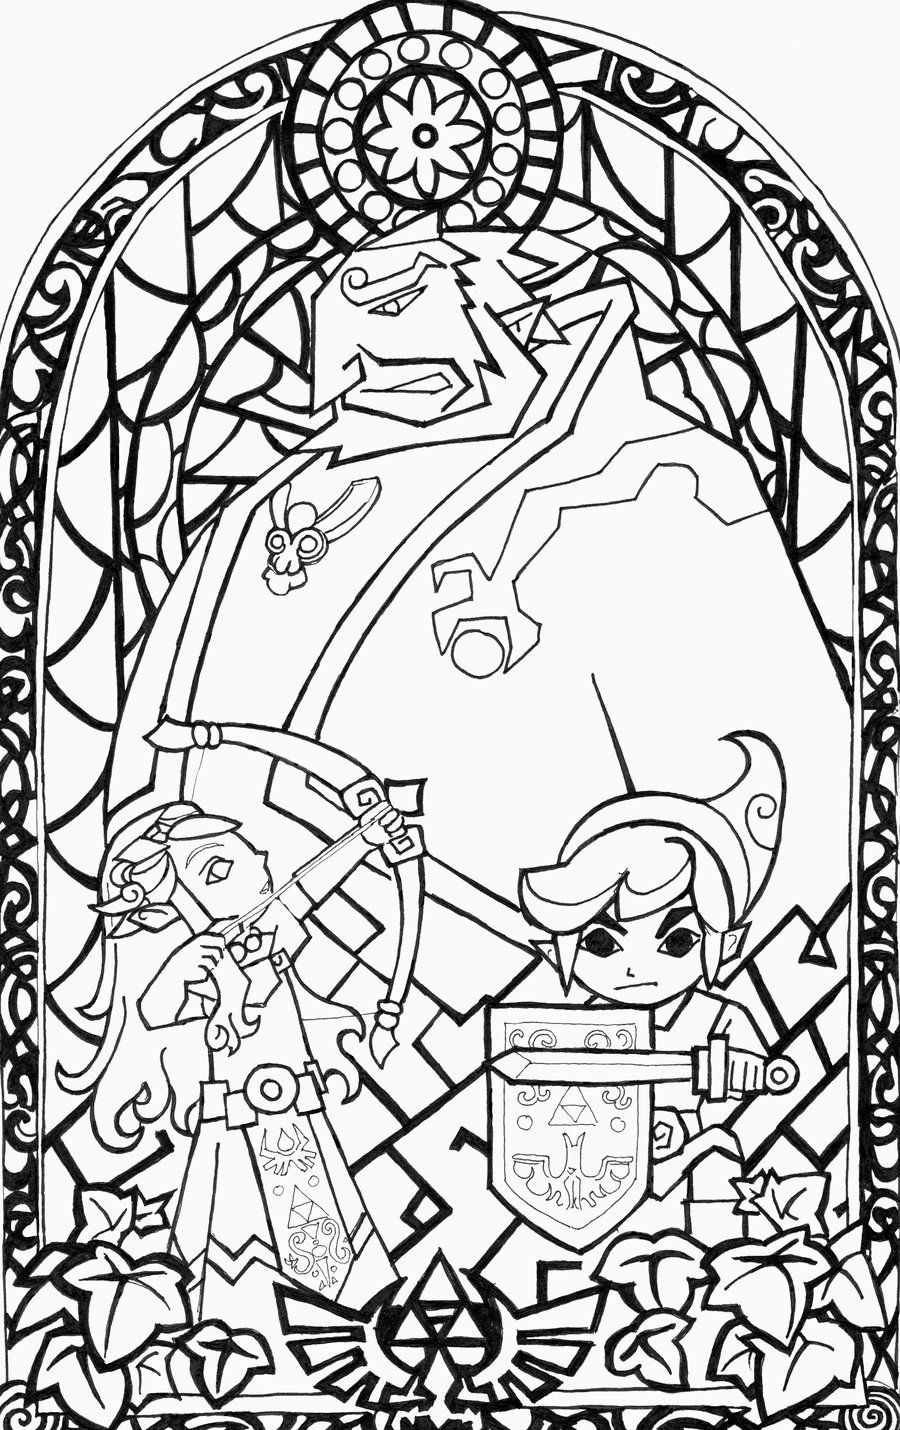 zelda wind breaker big leaf drawing google search - Zelda Coloring Pages